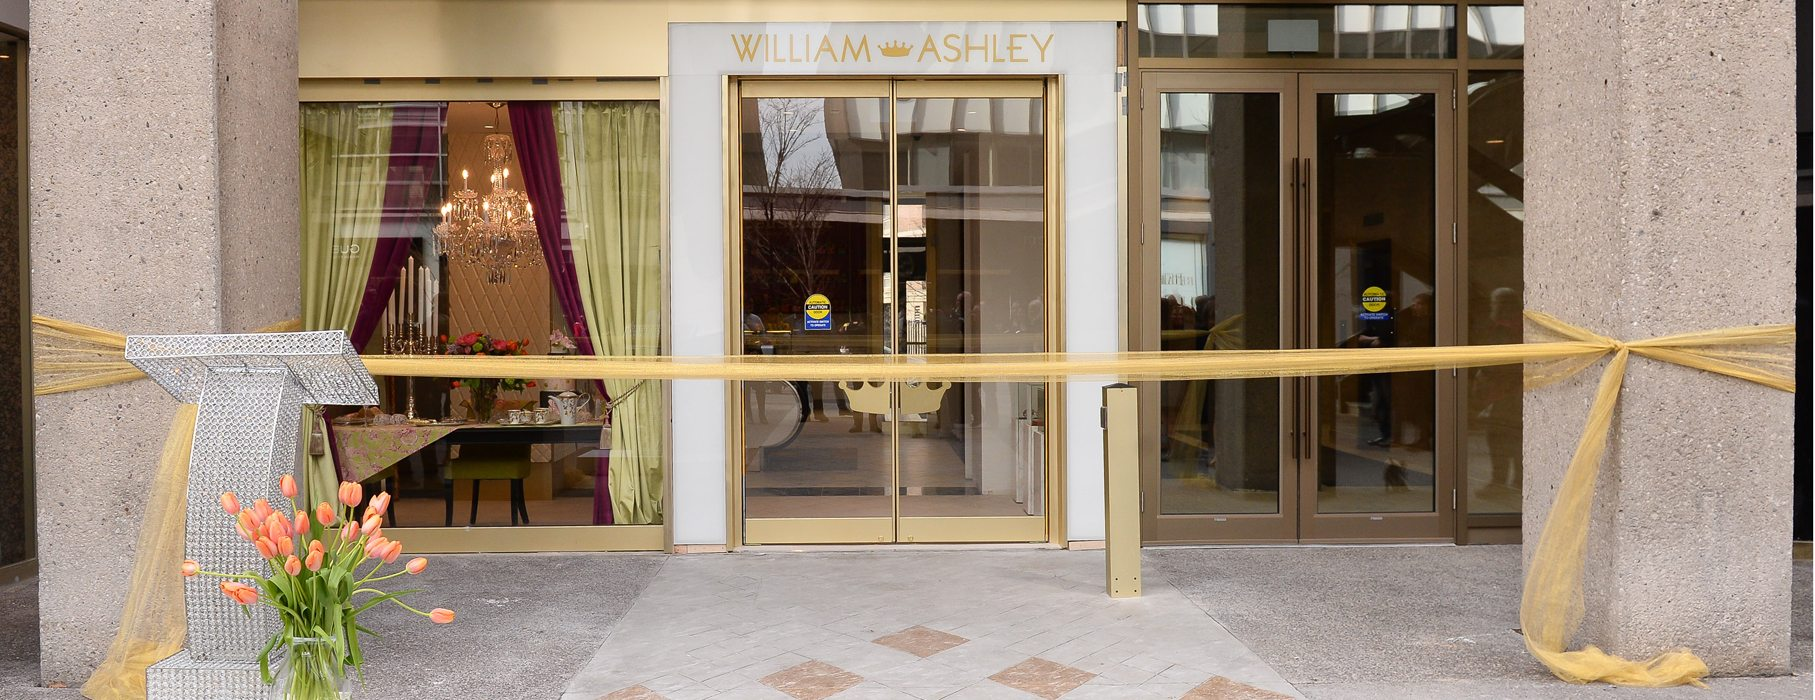 William Ashley Grand re-opening Ceremony